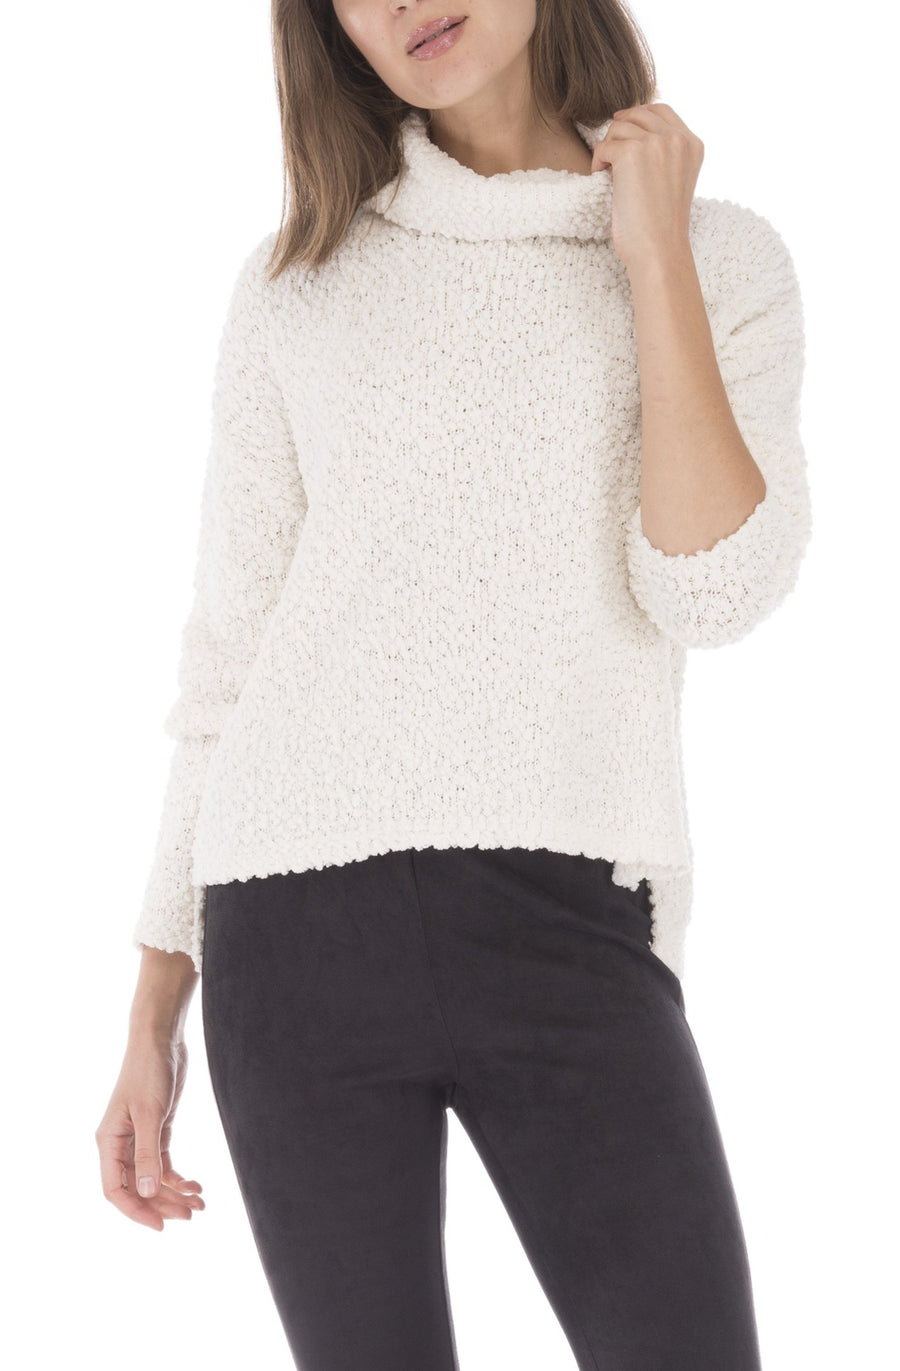 Popcorn Yarn Turtle Neck Sweater